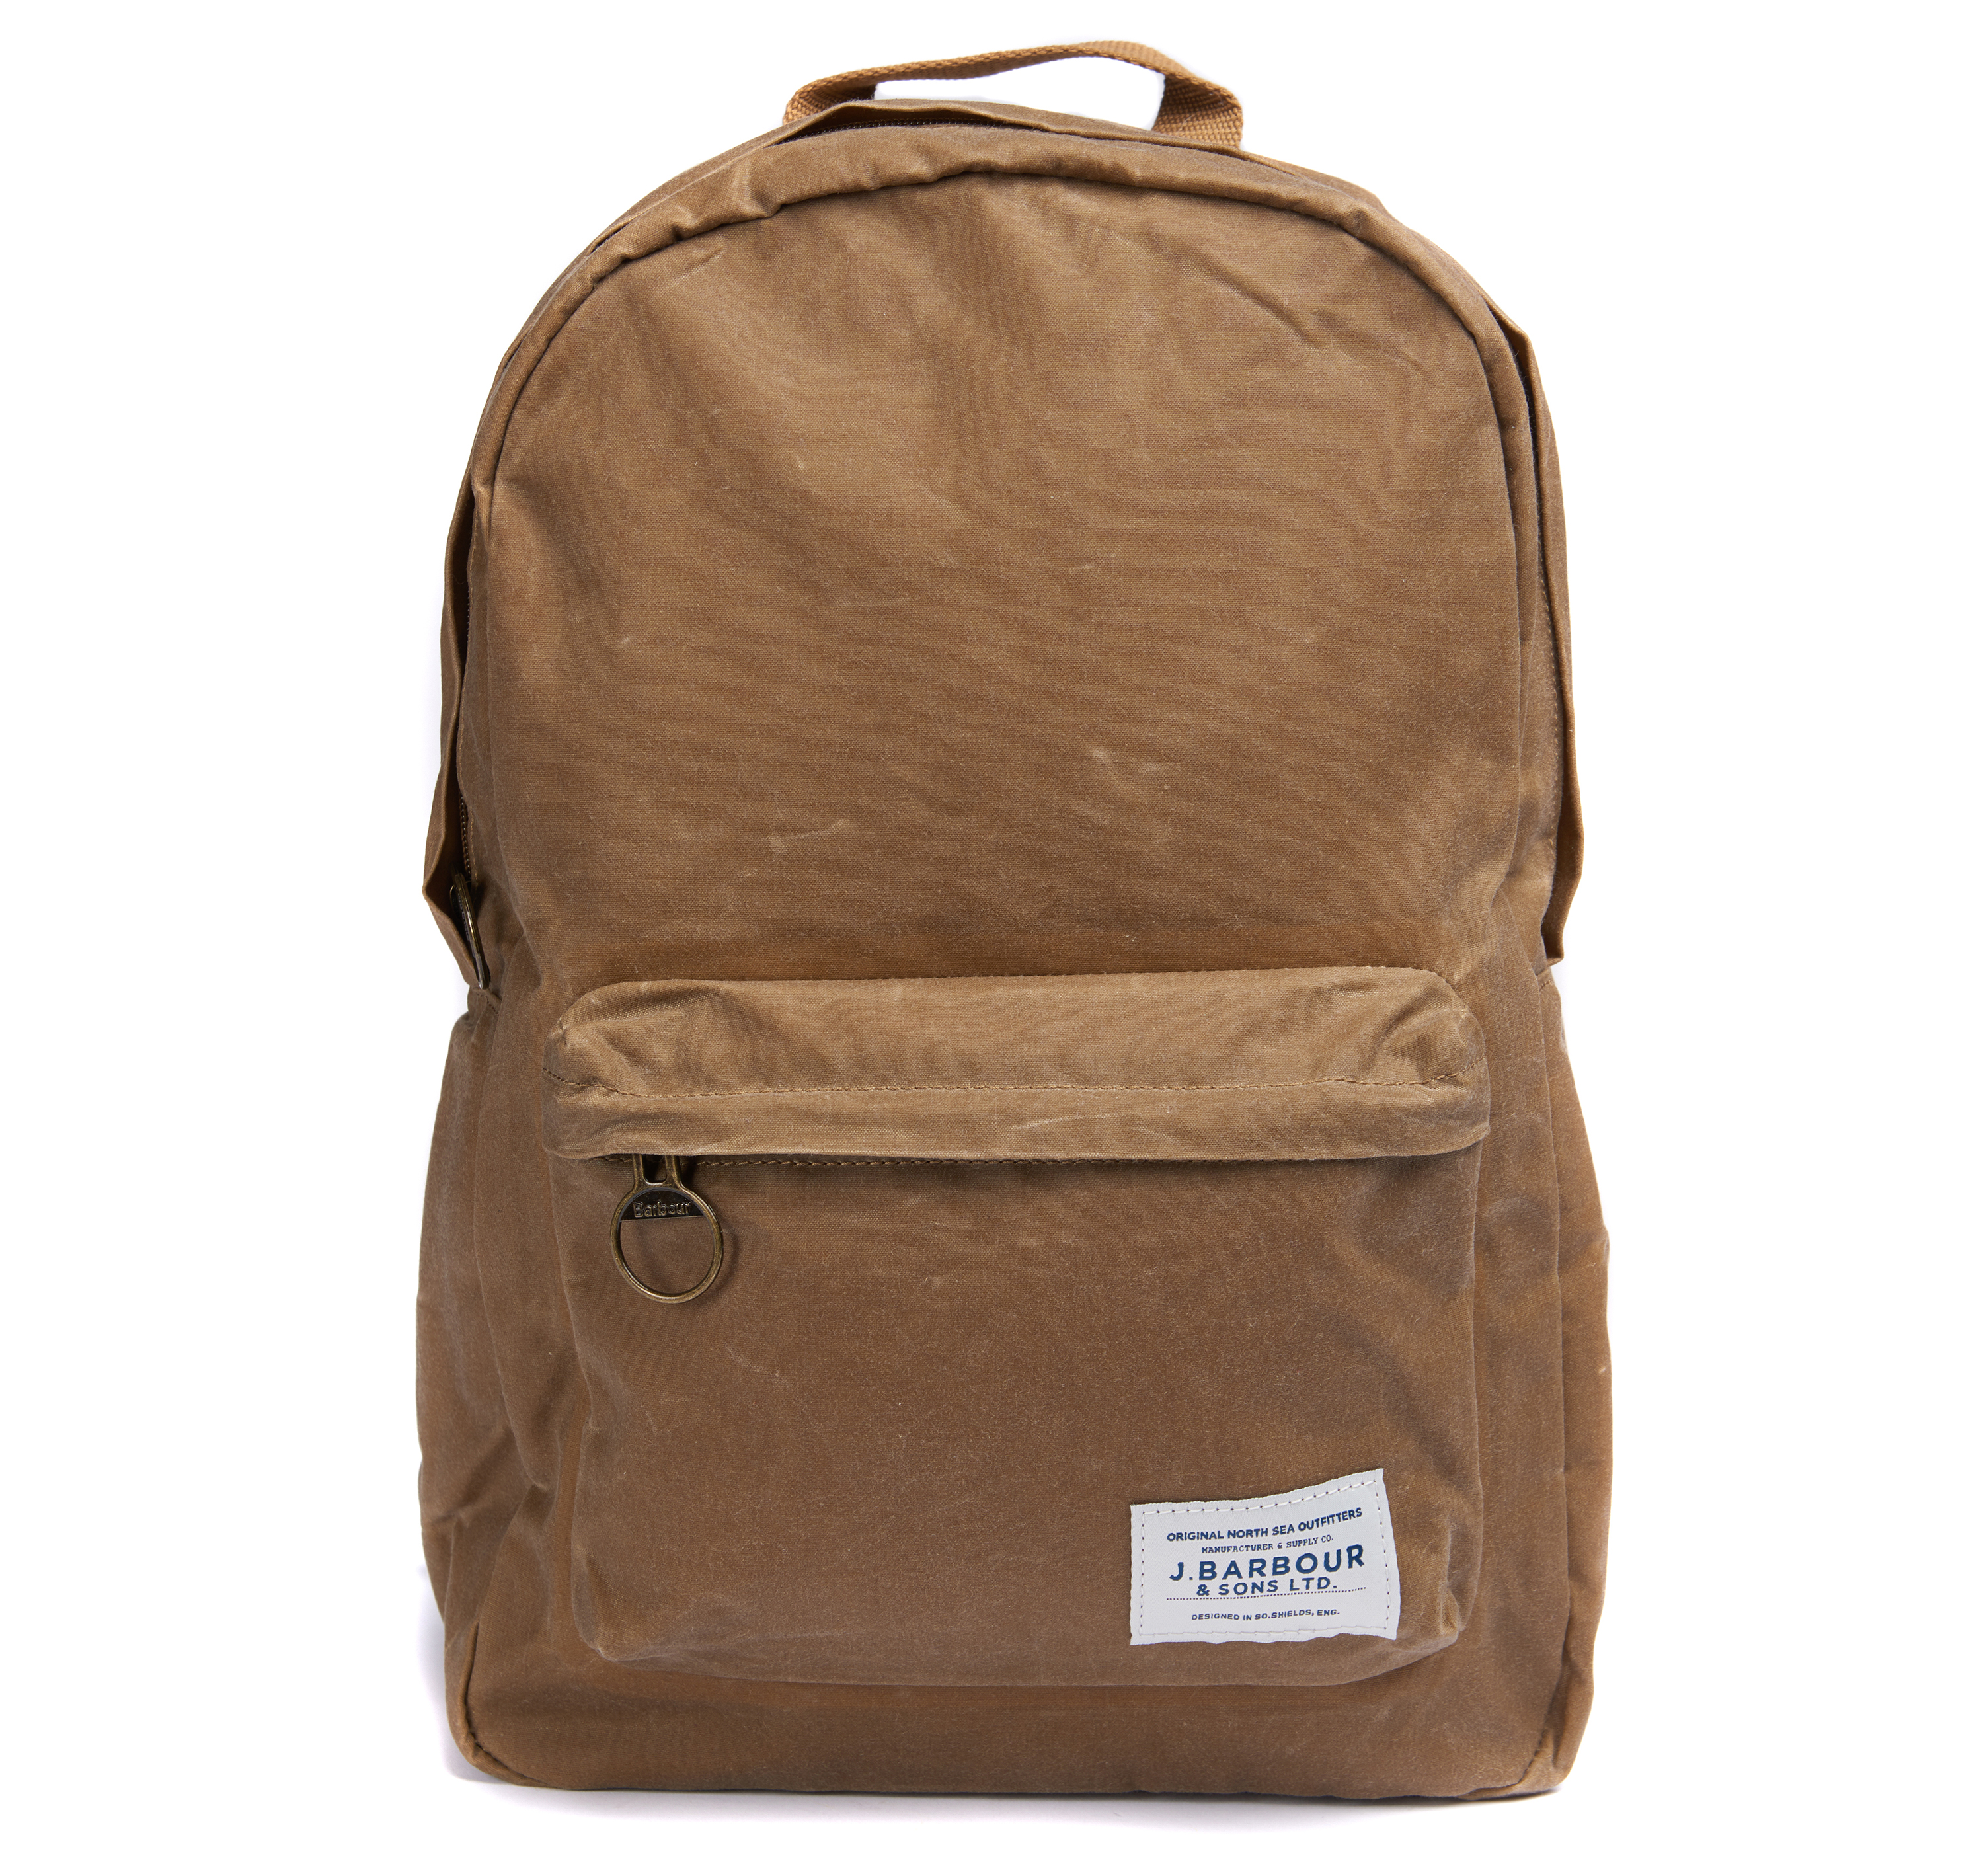 Barbour Eaden Backpack Sandstone Barbour Lifestyle